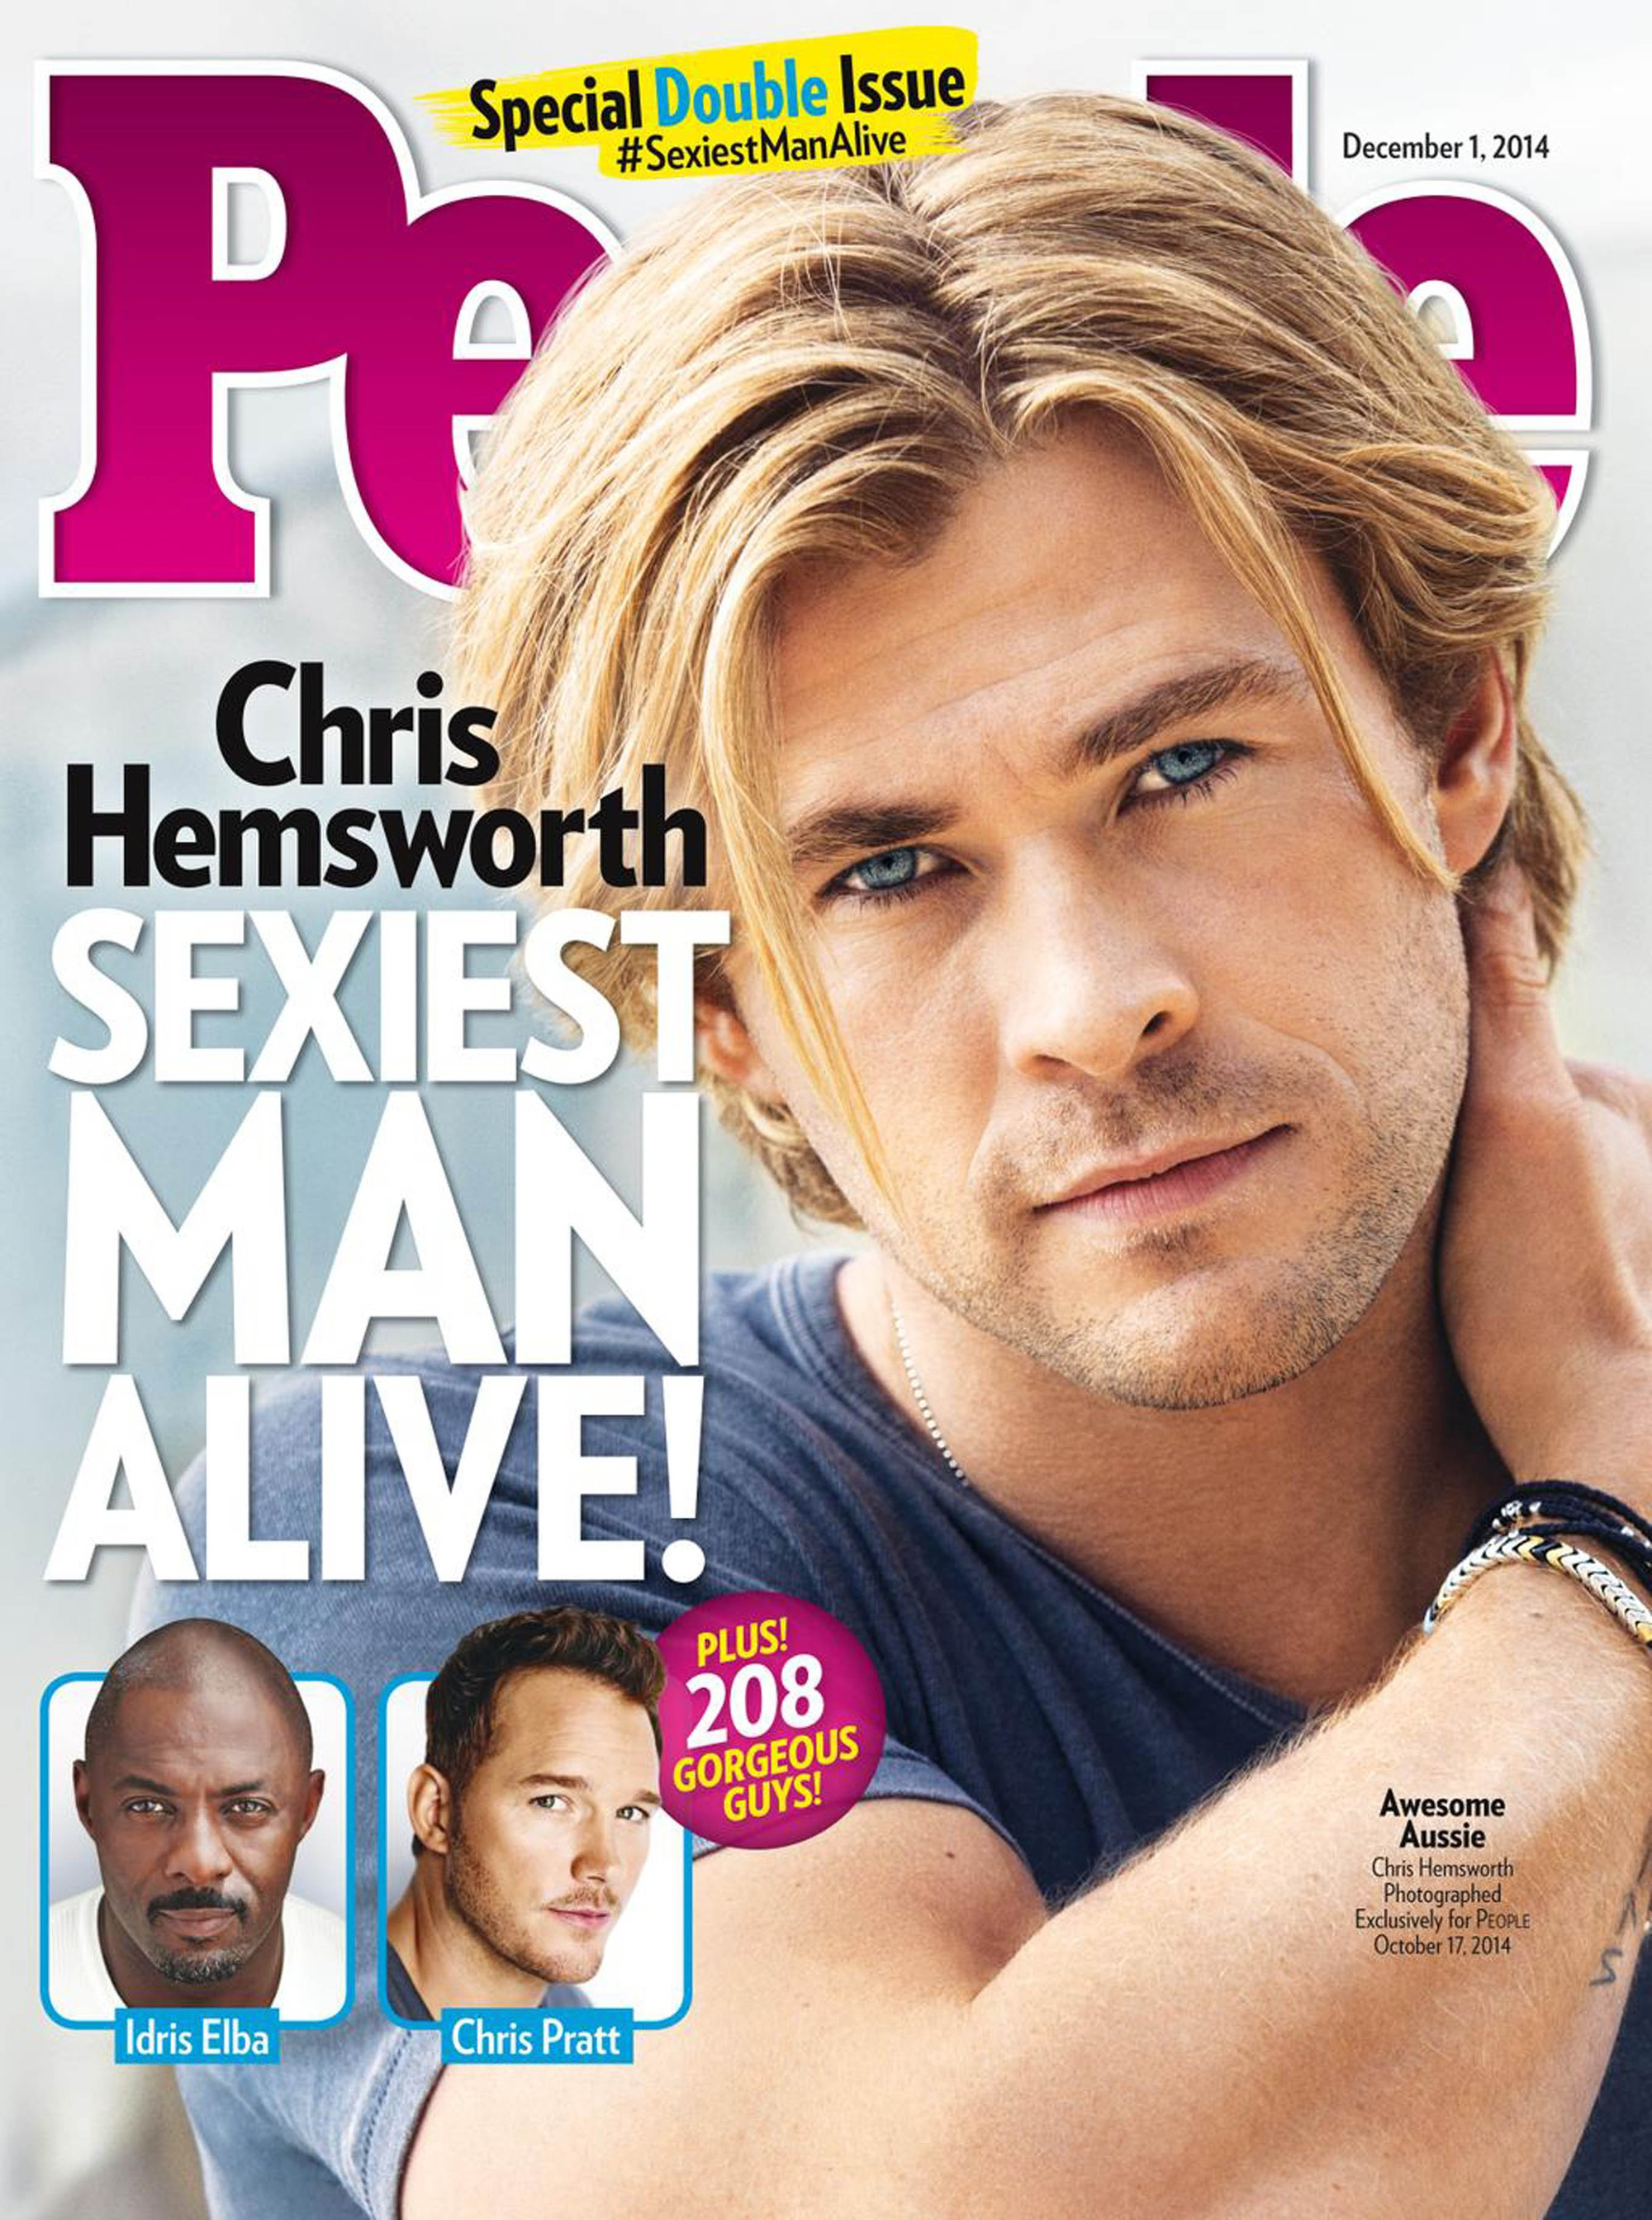 Liam Hemsworth - Liam Hemsworth: Beautiful as a god, he married her to be over 7 years old, I got married very poorly - Photo 1.